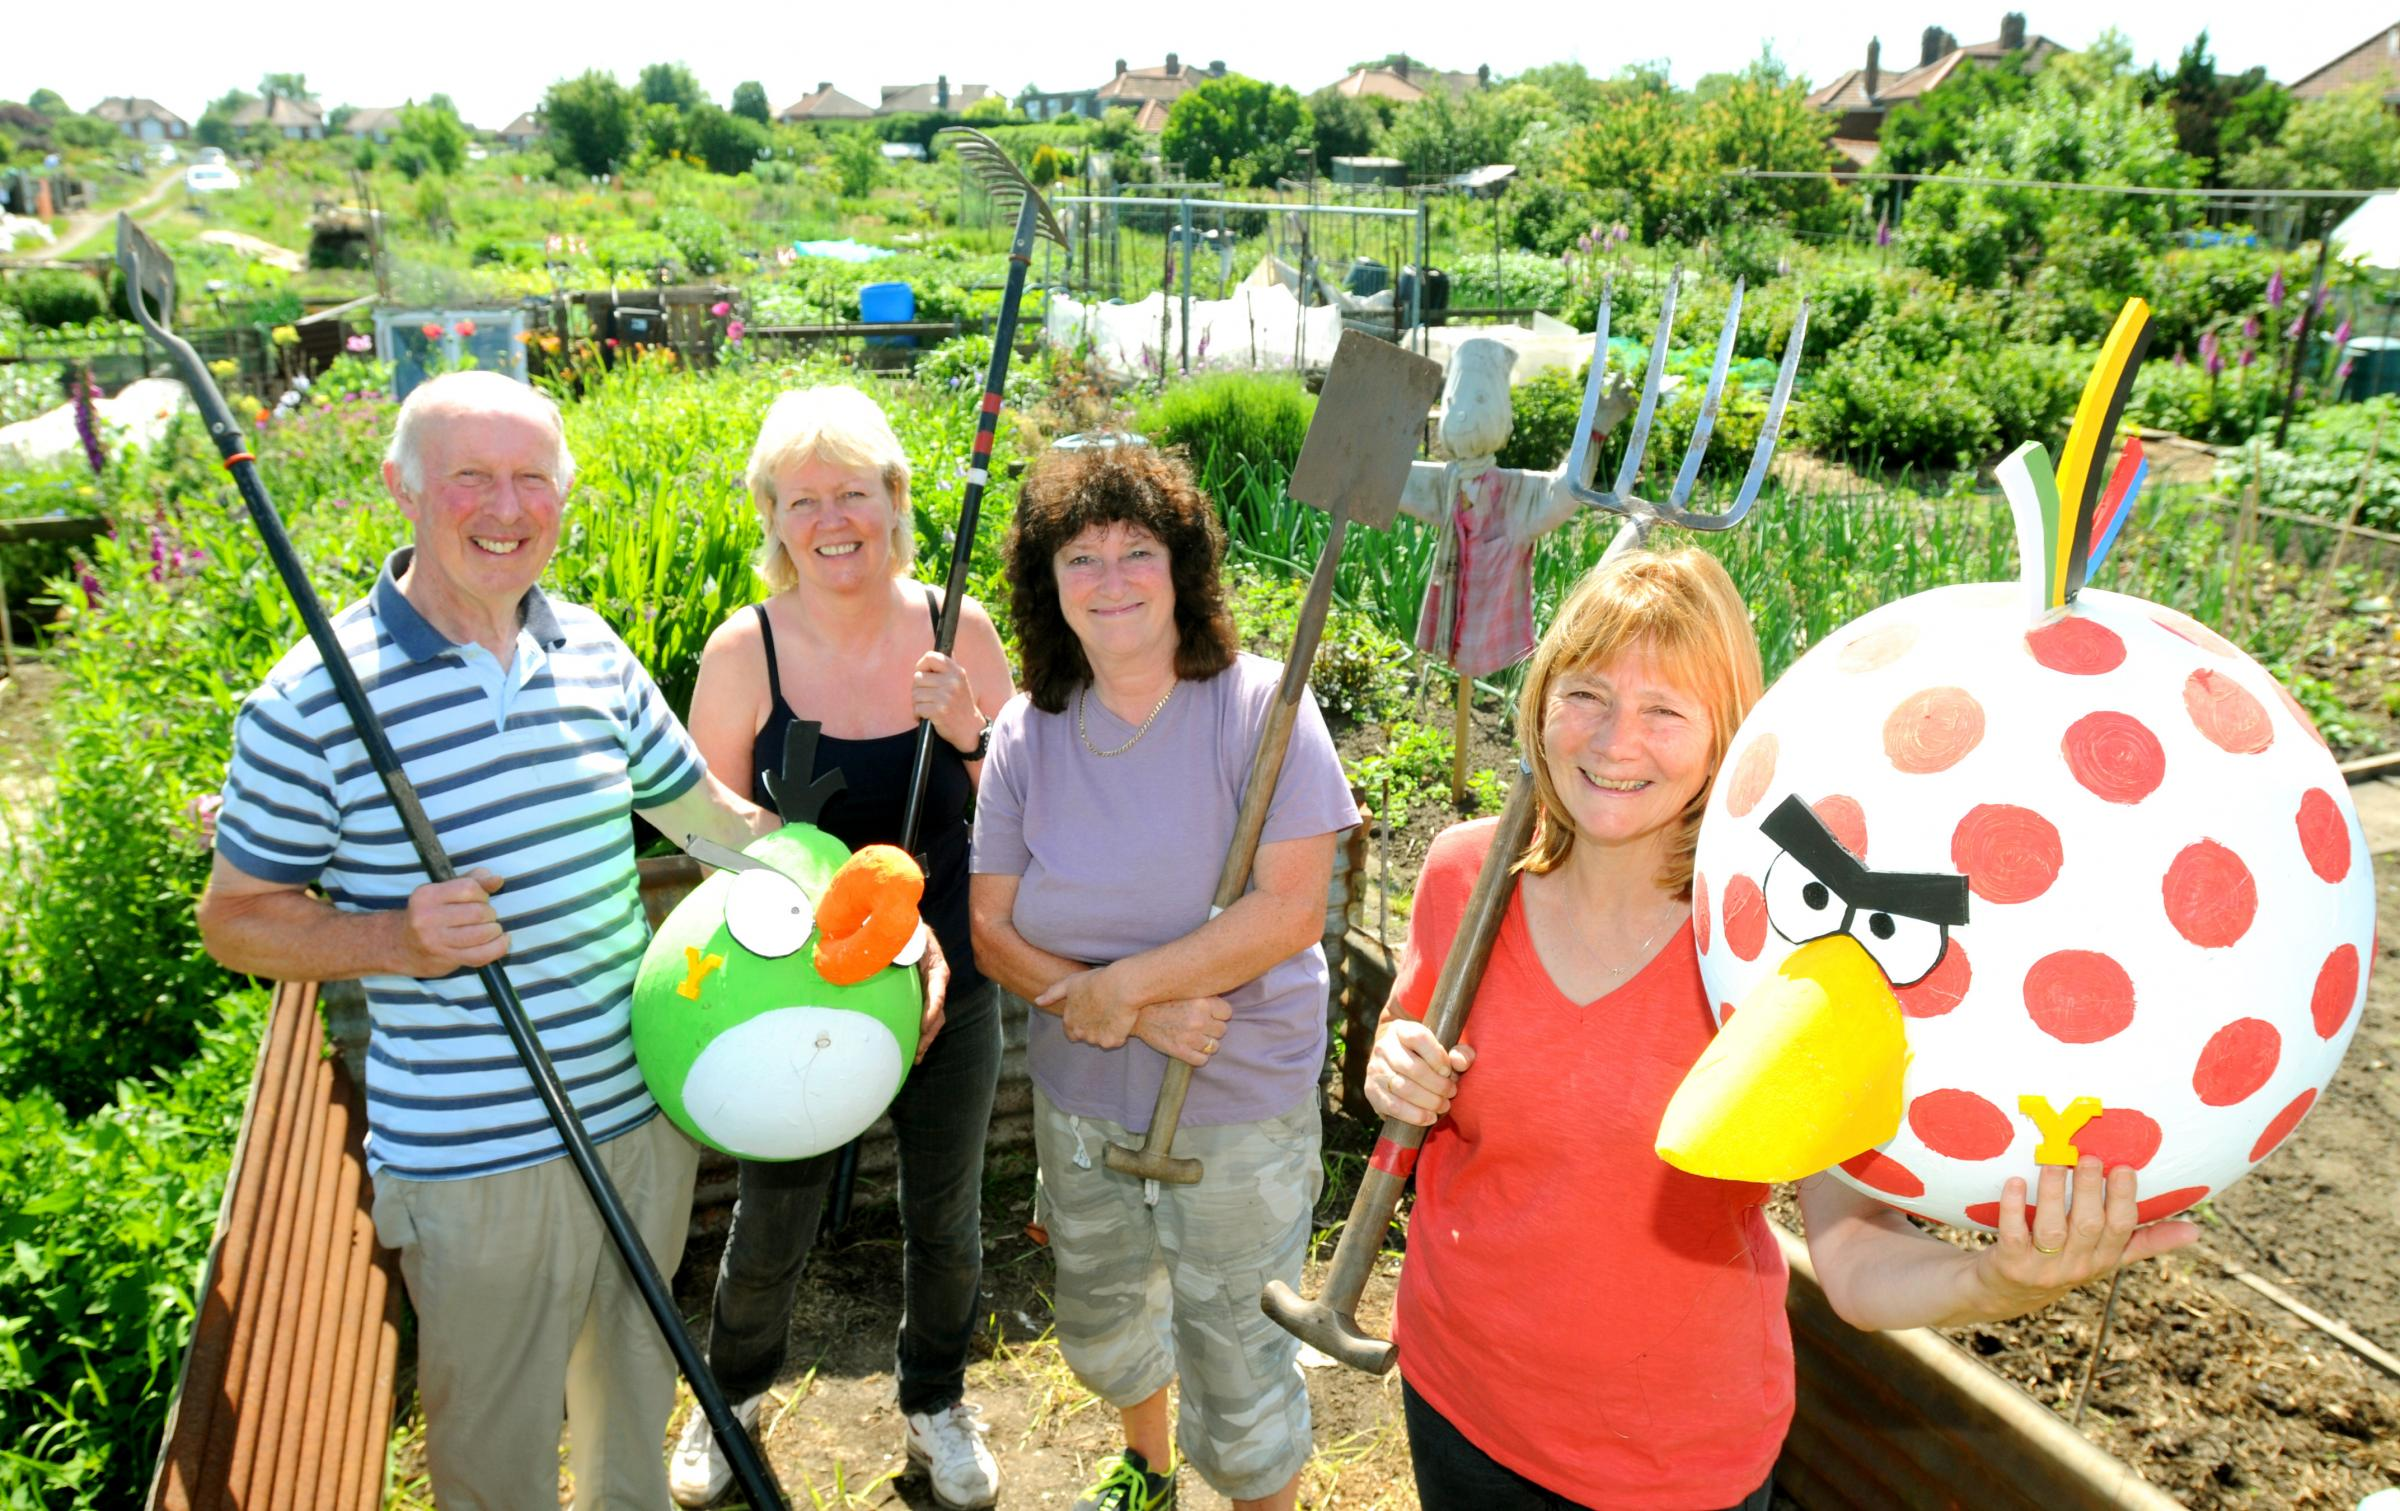 A LOT TOCELEBRATE:Poppleton Road Allotment  holders prepare for their open day today with, from left, Peter Byrne, Jill Berry, Marie Eyeington  and June Co